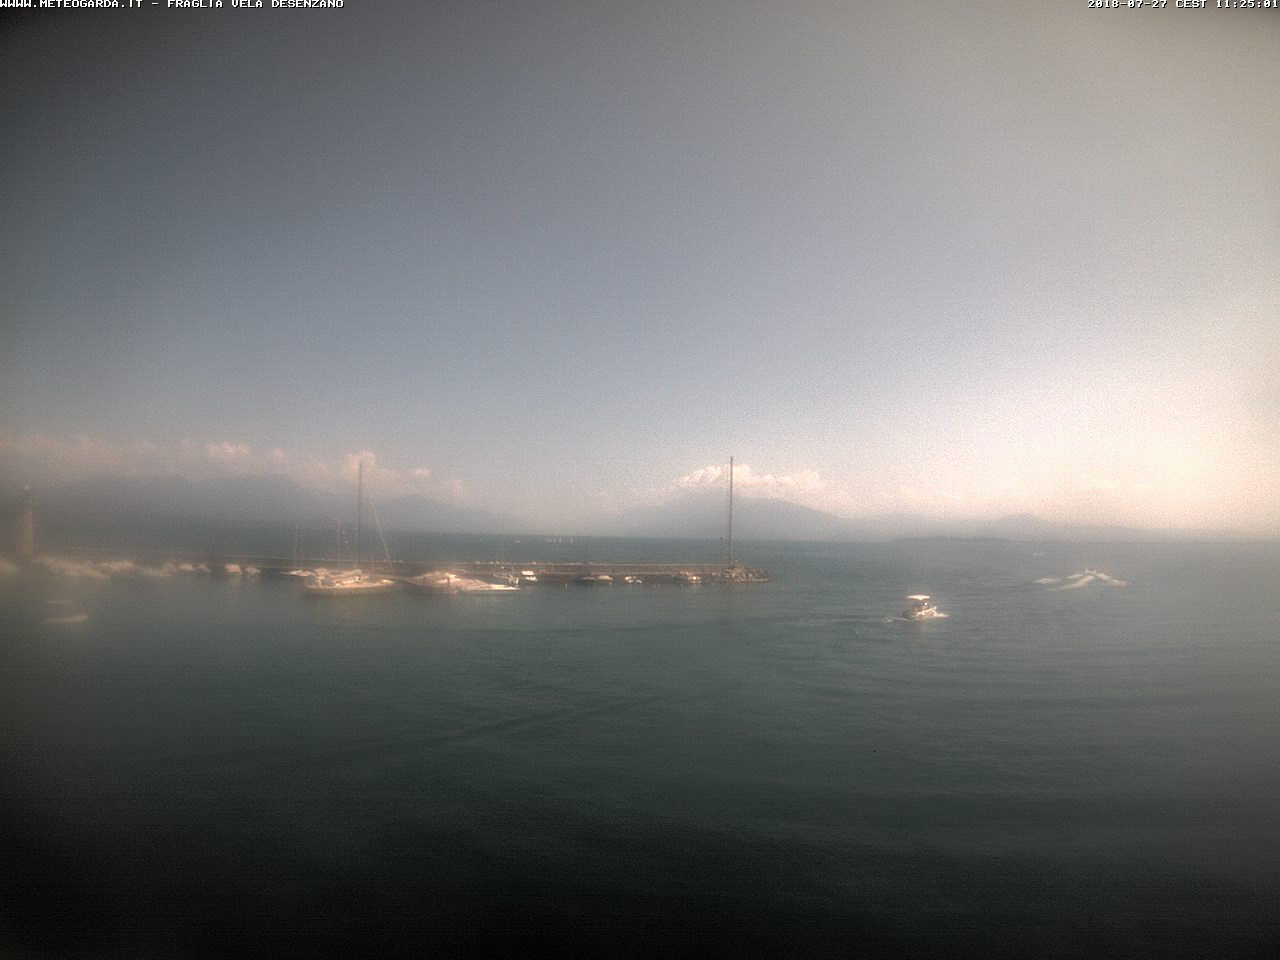 LE IMMAGINI IN DIRETTA CON LA WEB CAM! - LIVE IMAGES RIGHT THROUGH THE WEB CAM